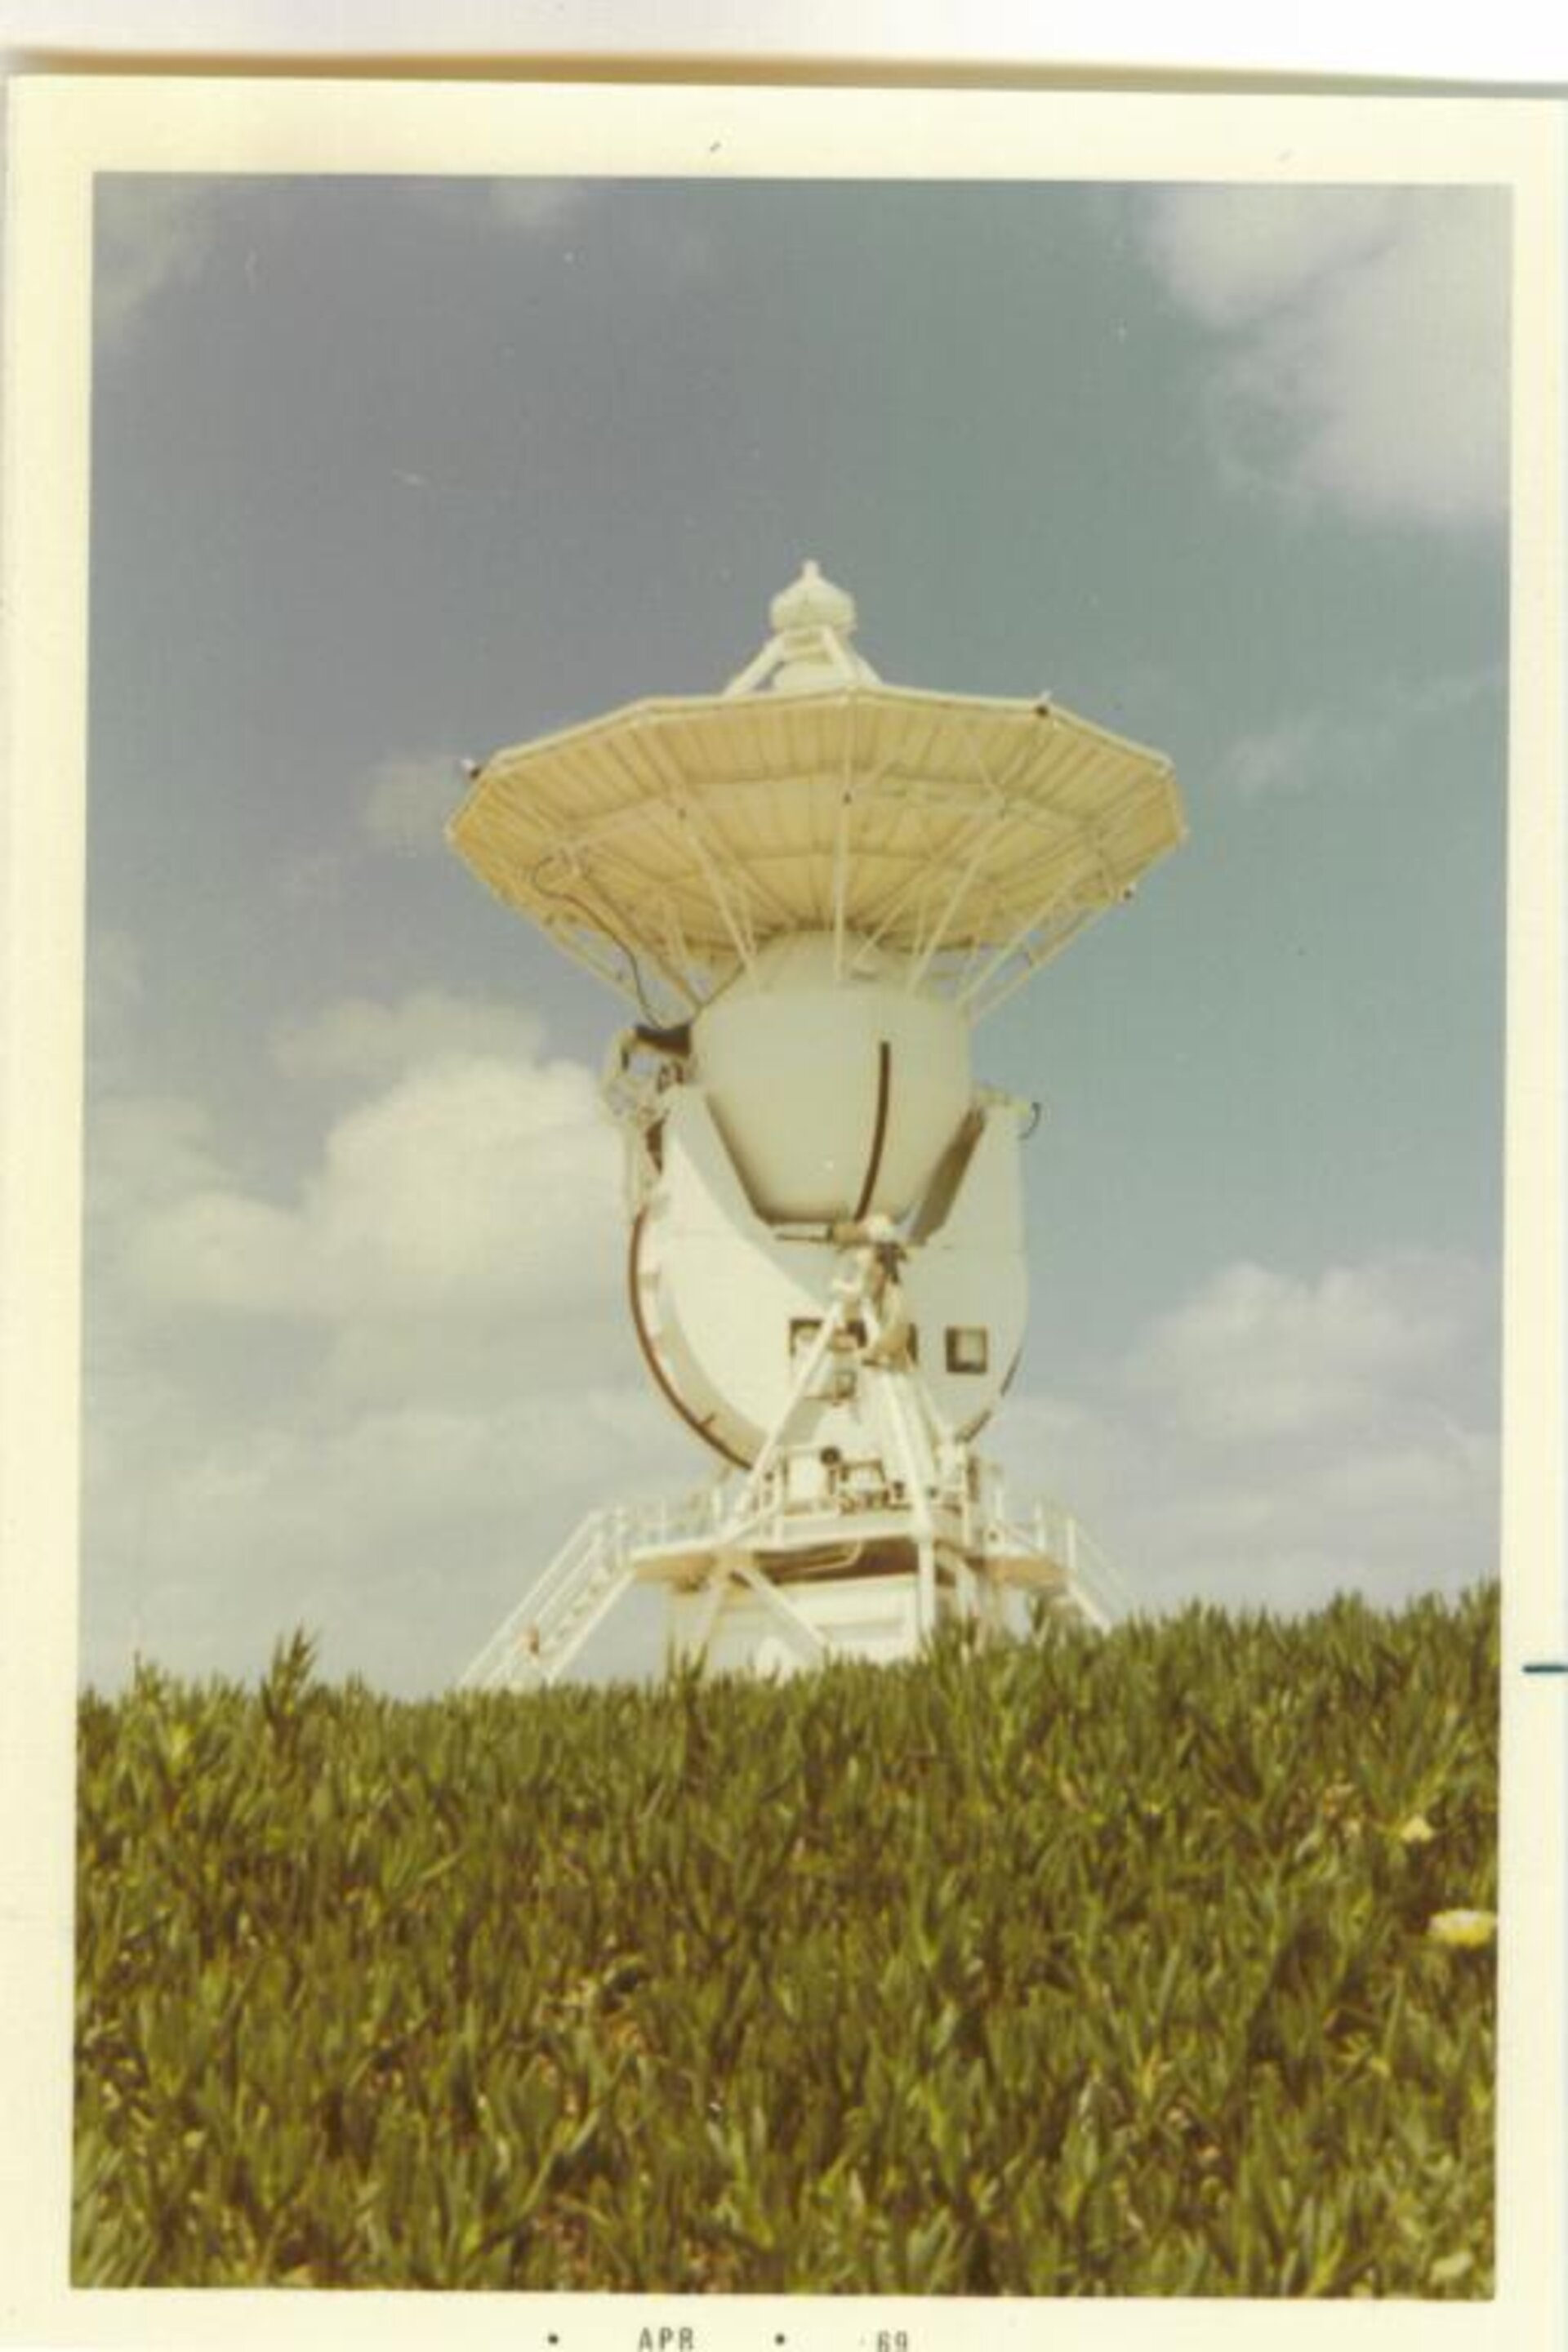 Maspalomas MSFN USB antenna for Apollo communications in 1969